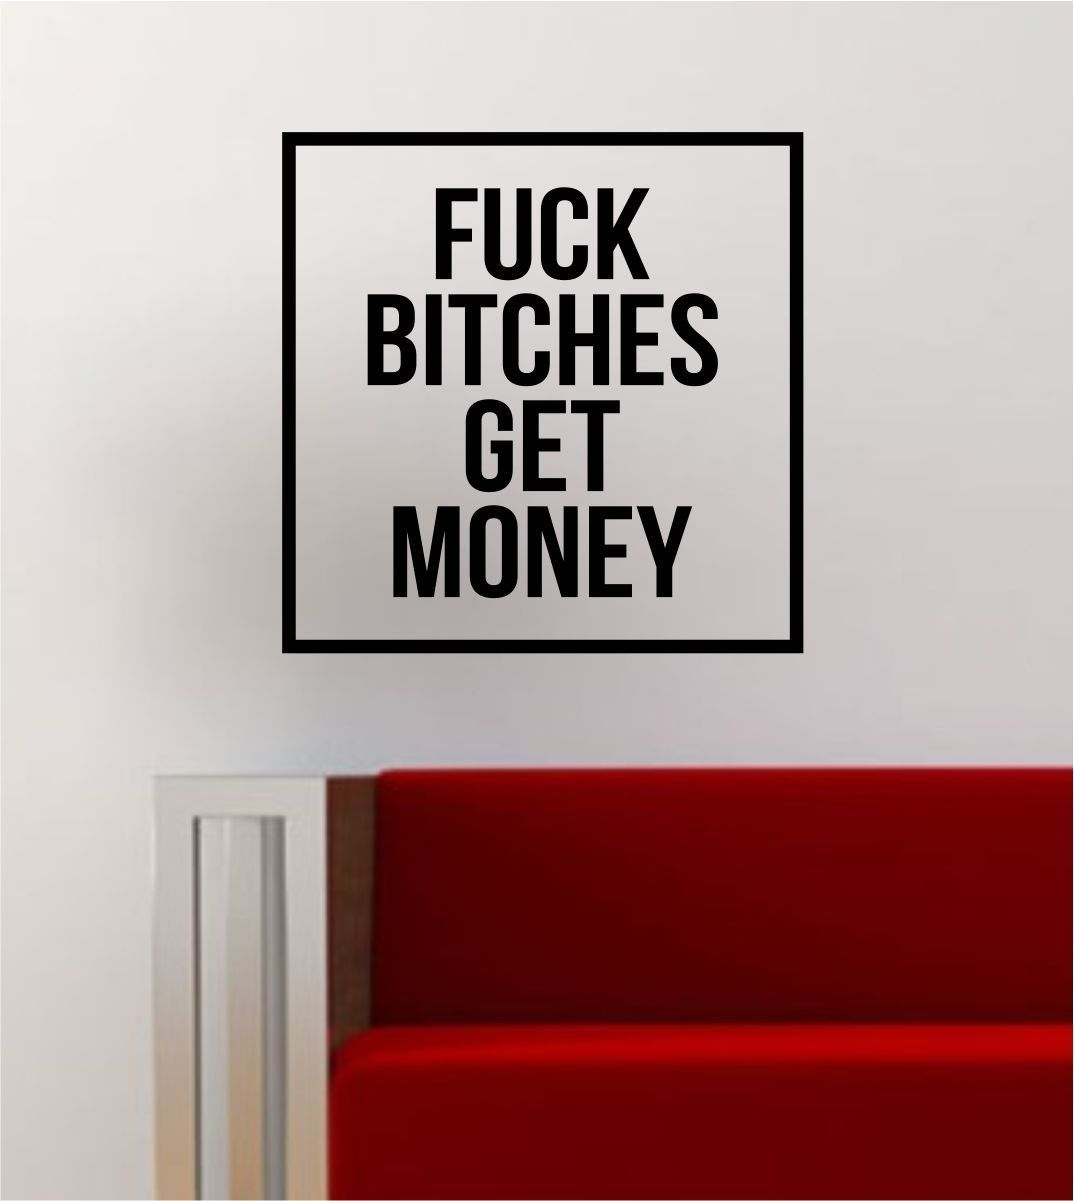 Scarface money power respect vinyl wall decal for home decore - F B Get Money Simple Square Design Biggie Rap Music Quote Music Lyrics Wall Decal Sticker Vinyl Art Home Decor Positive Affirmations Thoughts And